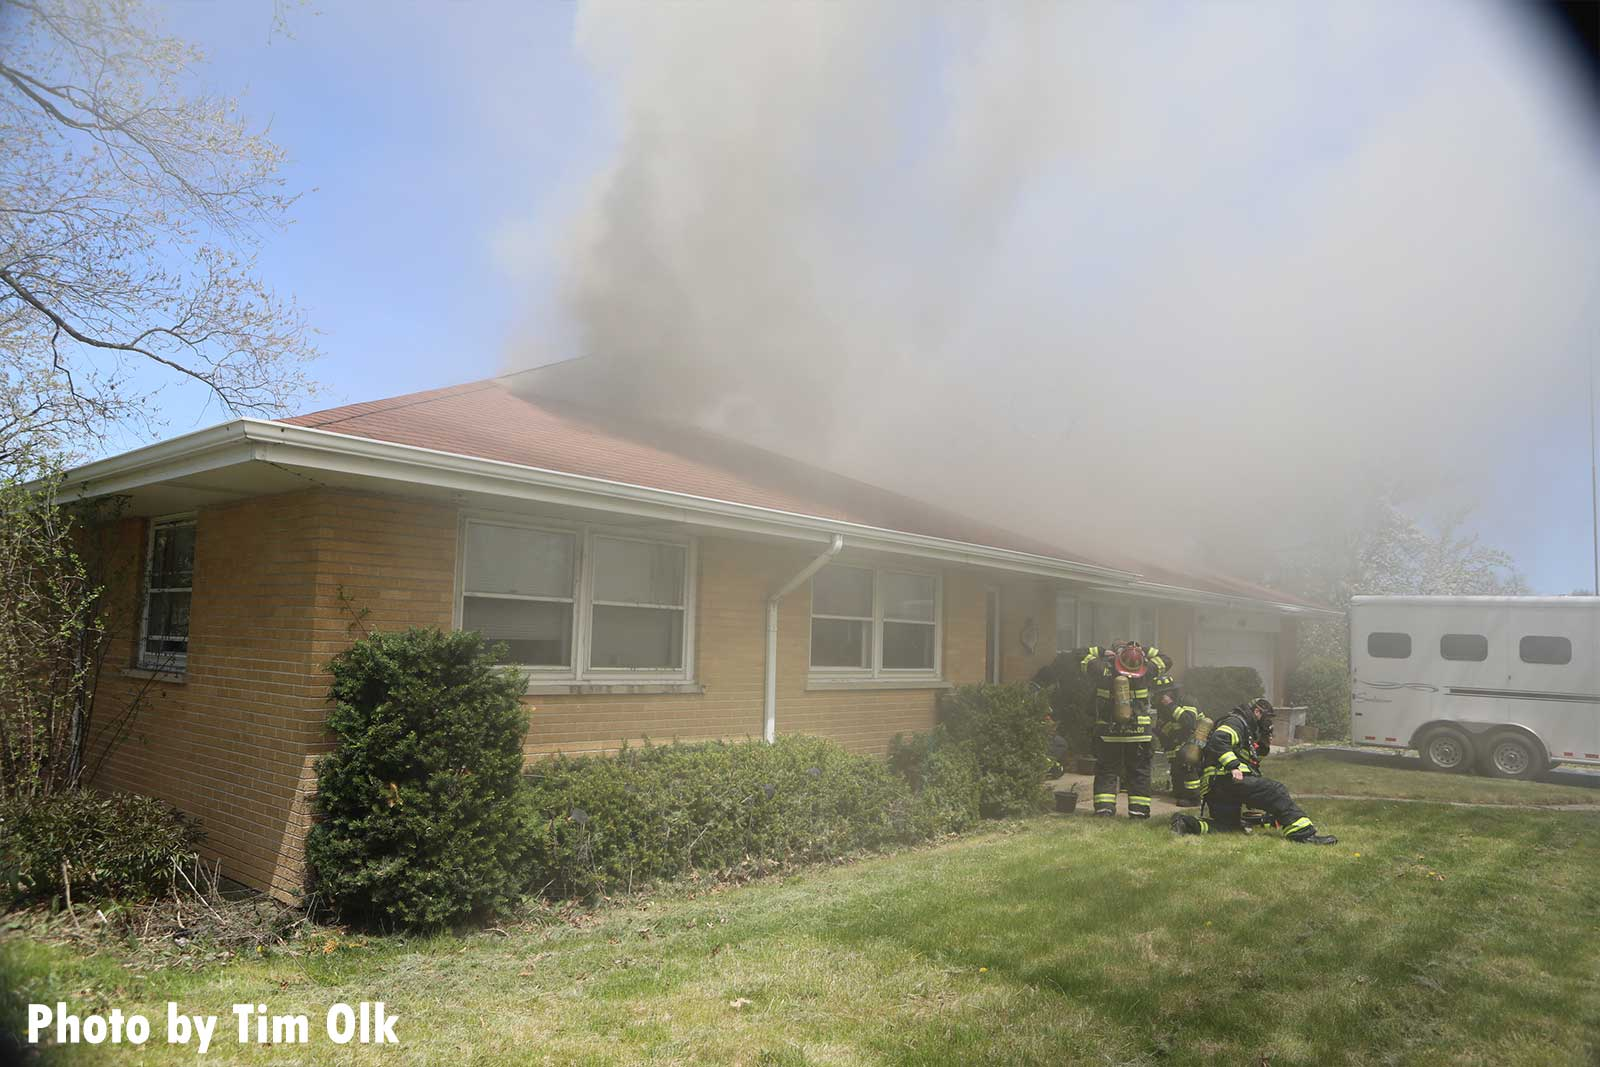 Another angle of smoke coming from the home